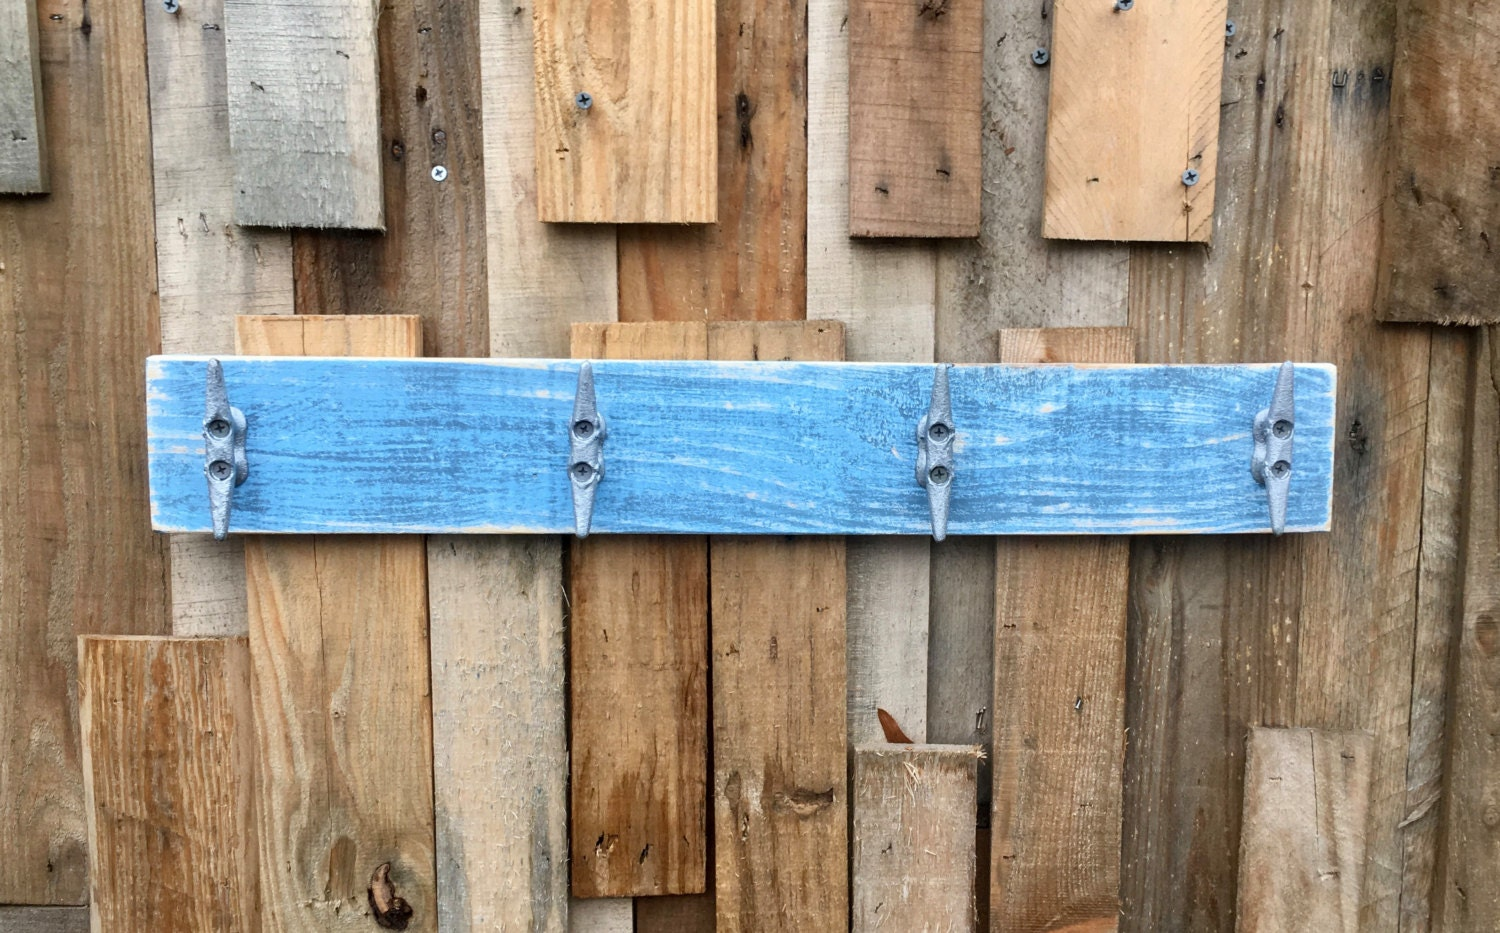 Nautical Boat Cleat Coat Rack, Distressed Blue, Towel Rack, Book Bag Rack,  Hat Rack, Or Key Rack With Boat Cleats And Reclaimed Wood Part 89